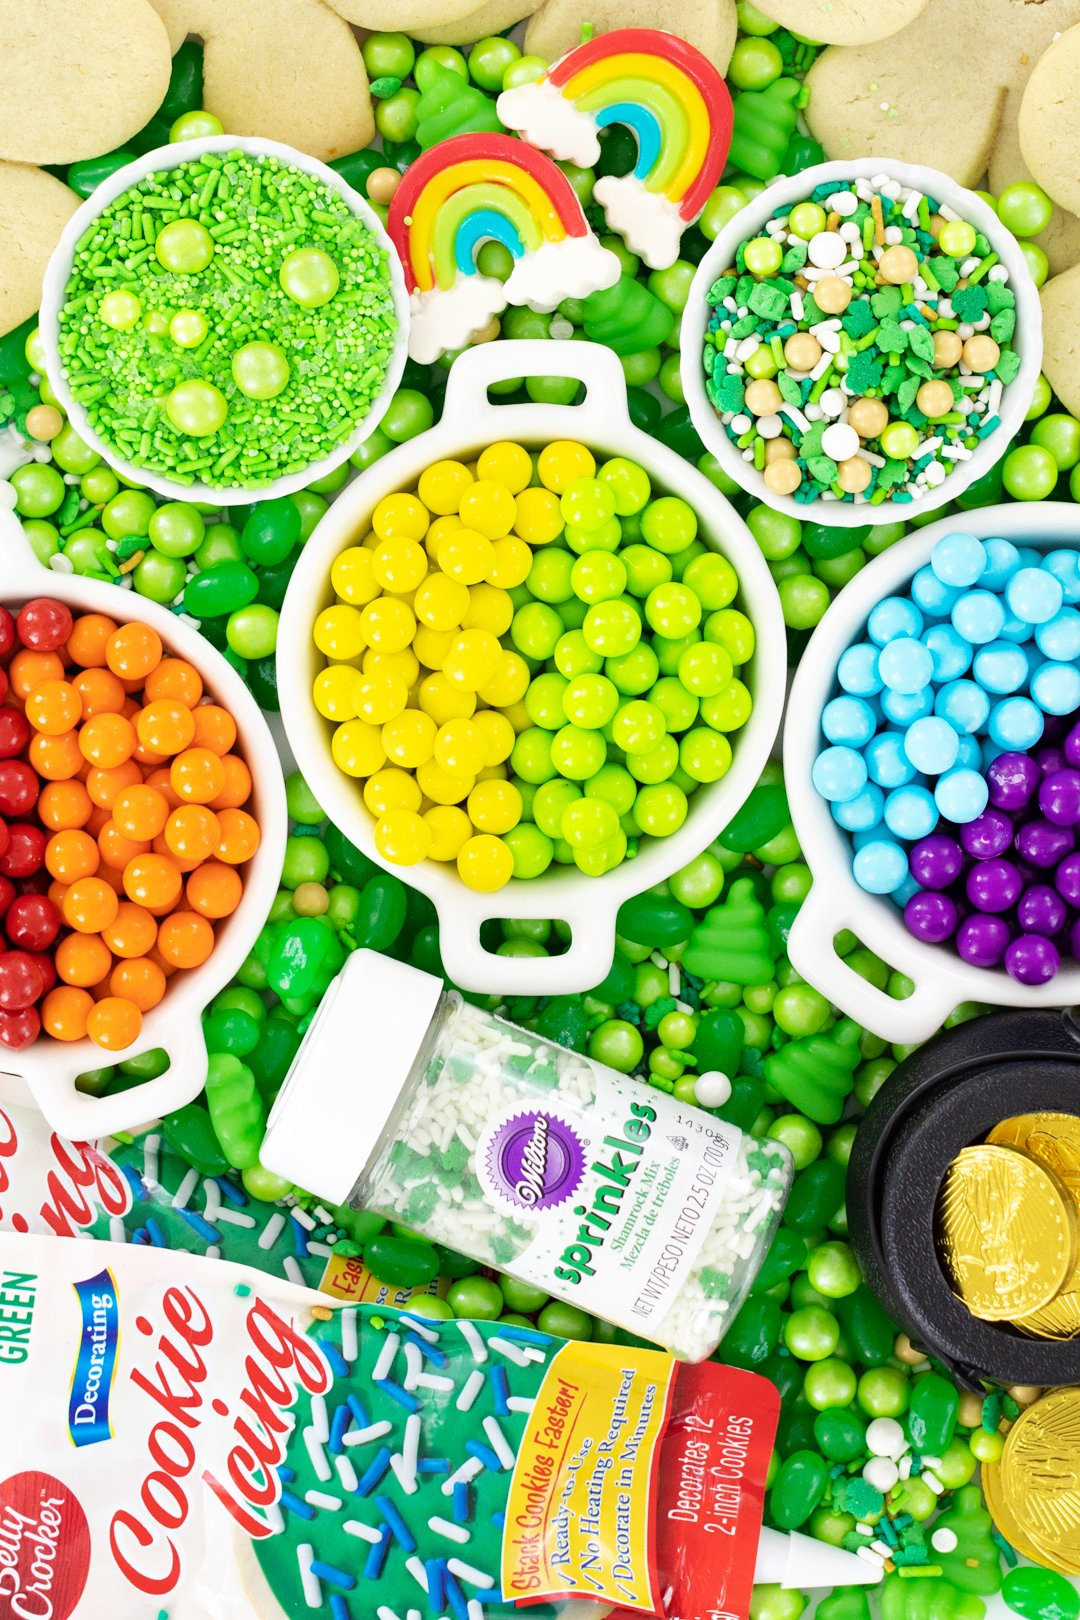 tray of st. patrick's day candy